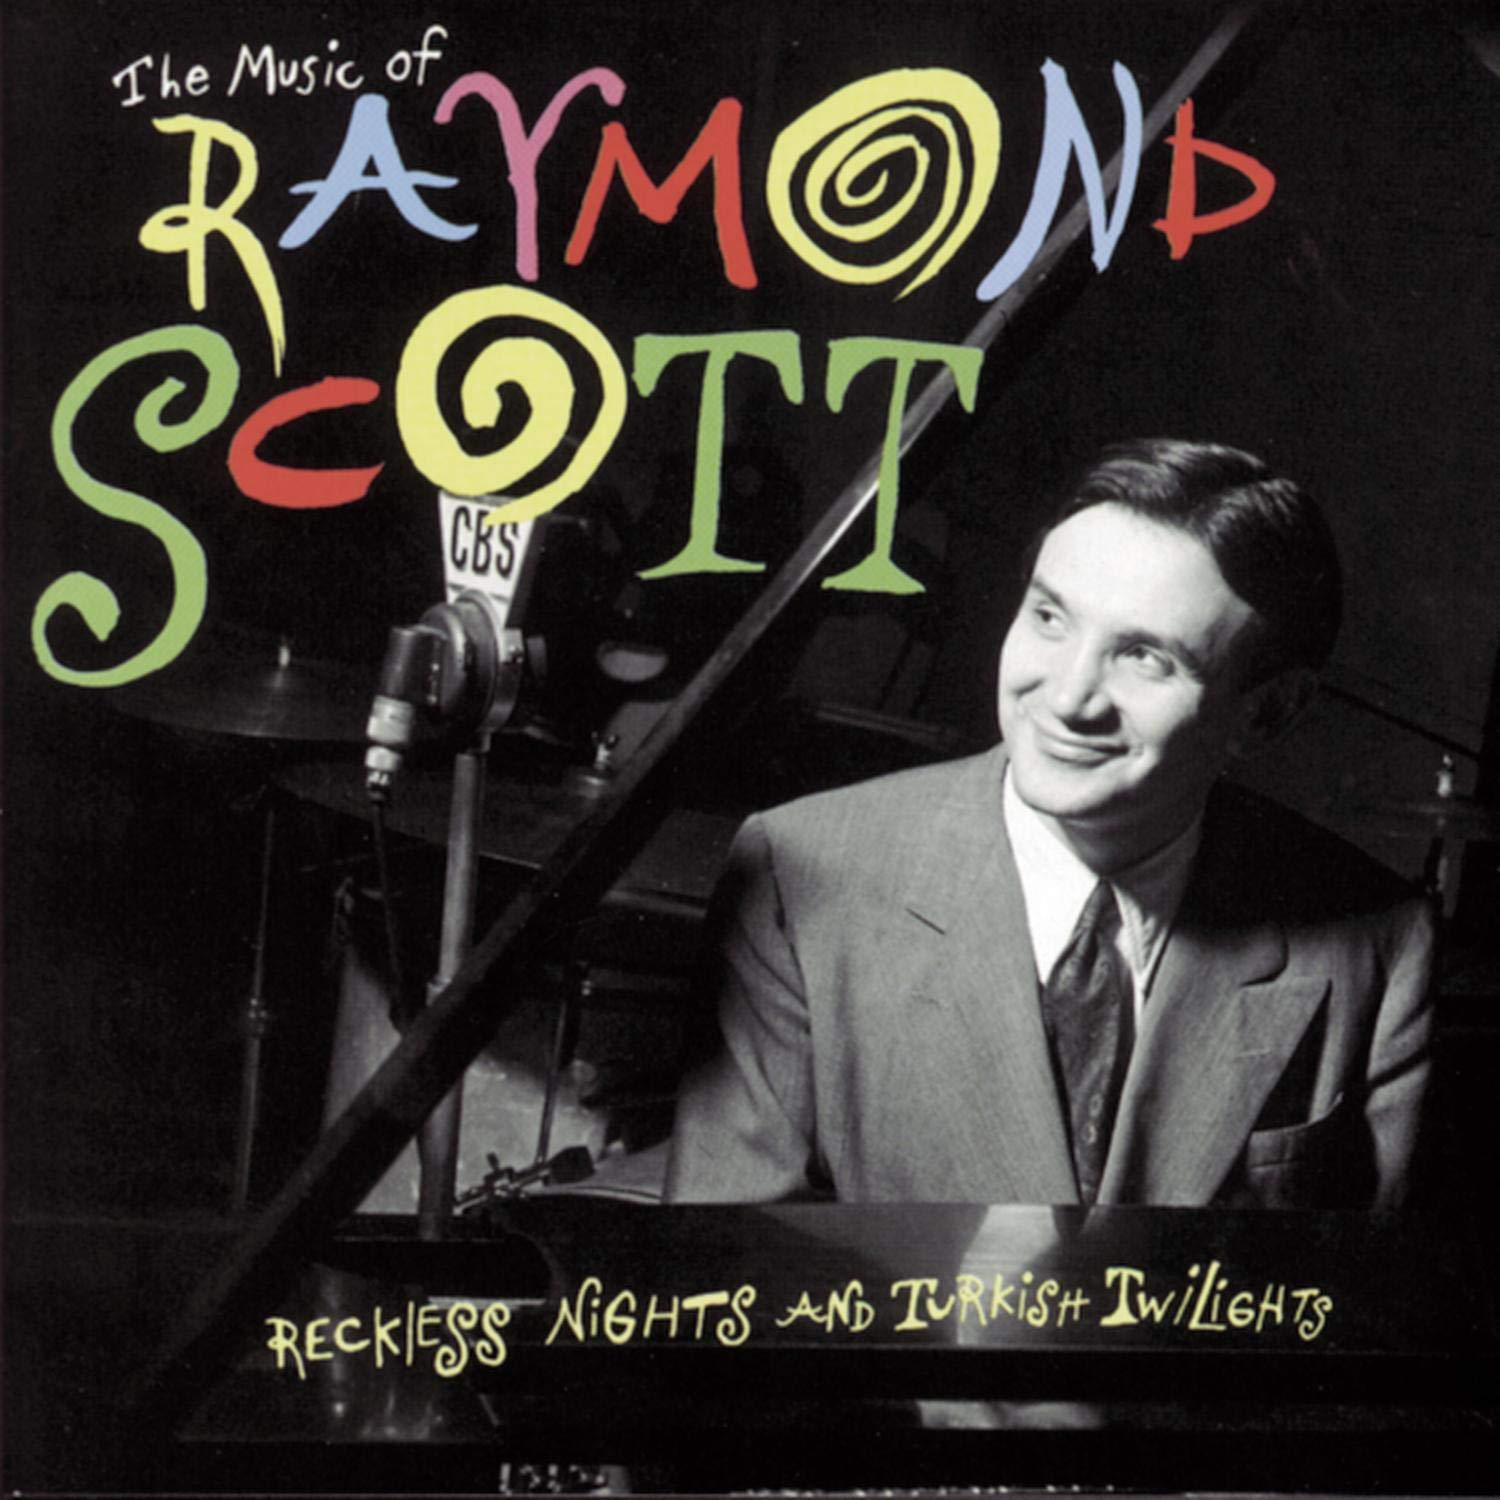 The Music of Raymond Scott / Reckless Nights and Turkish Twilights by Sony Legacy